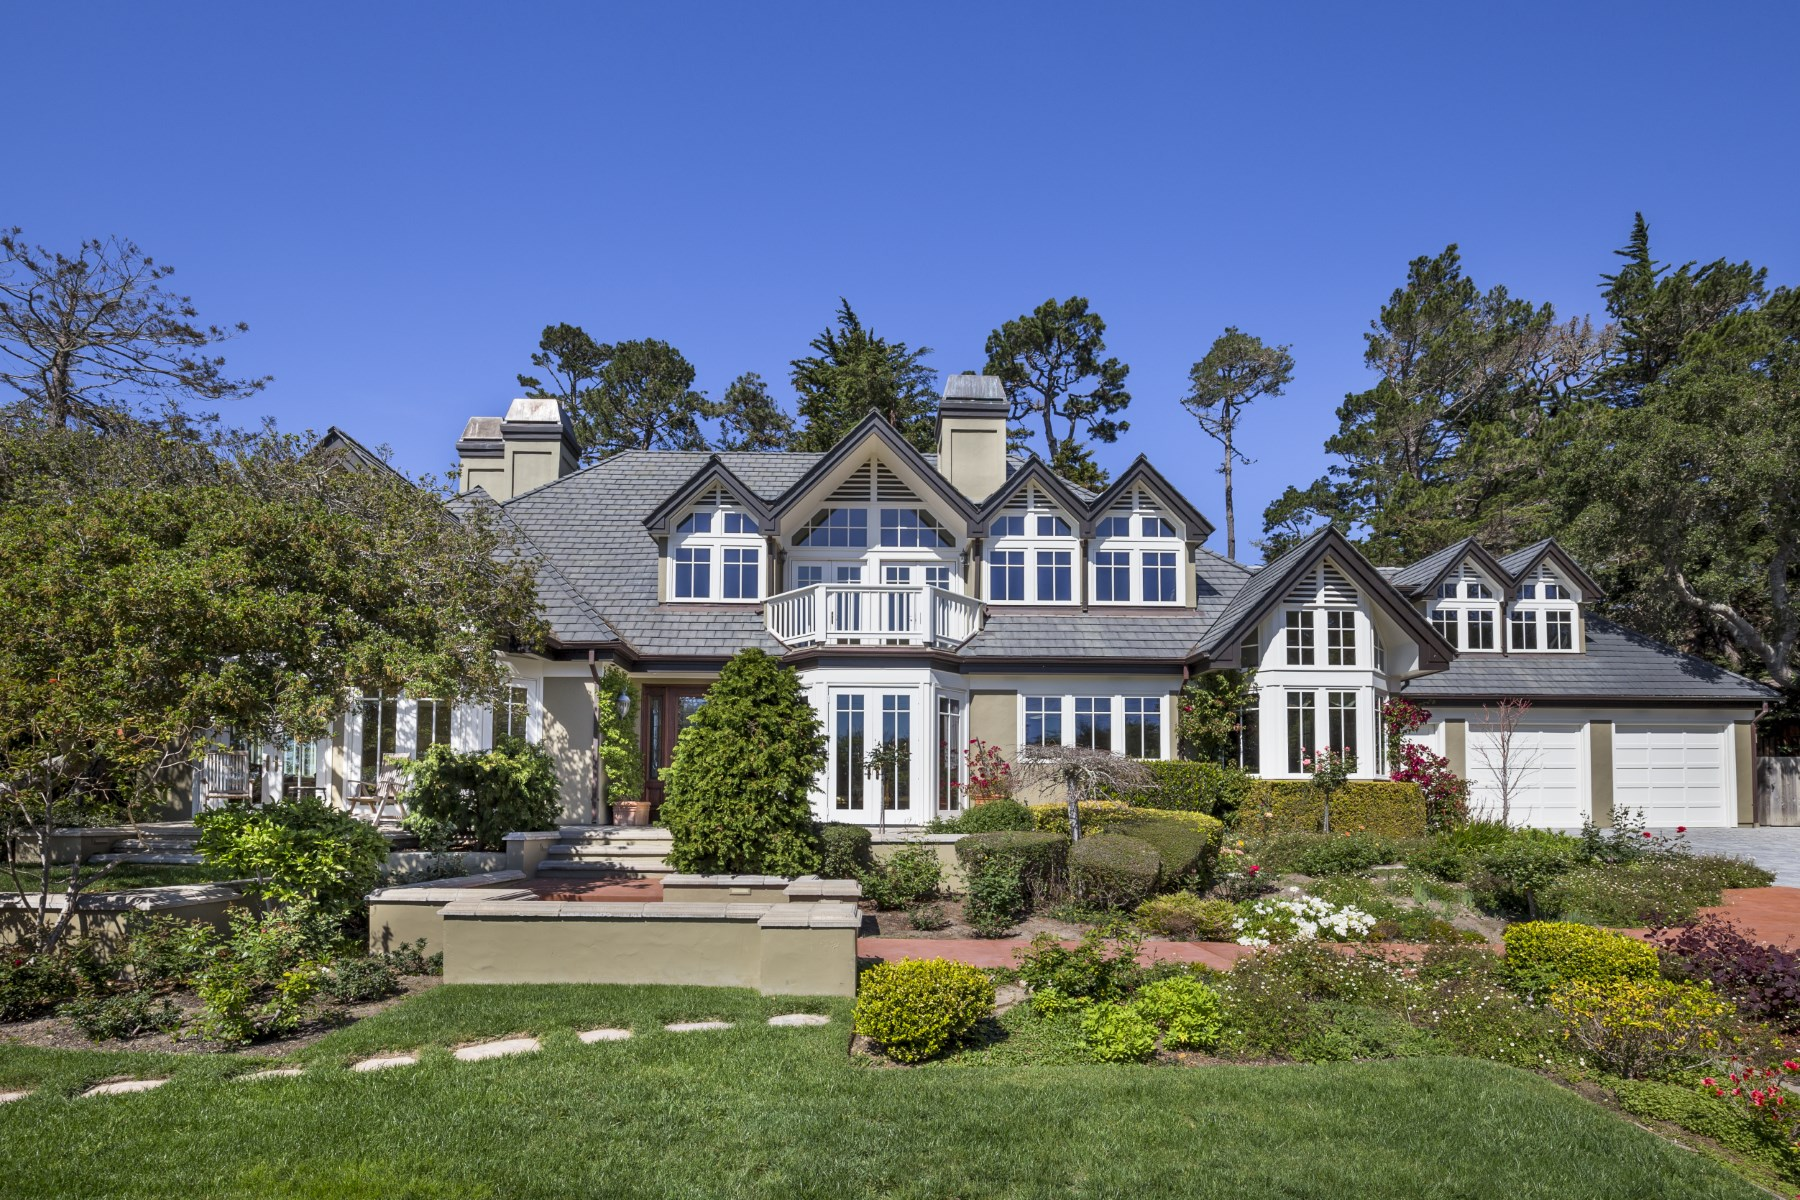 Single Family Home for Sale at Ocean View Estate in Pebble's Sunbelt 3937 Ronda Road Pebble Beach, California, 93953 United States